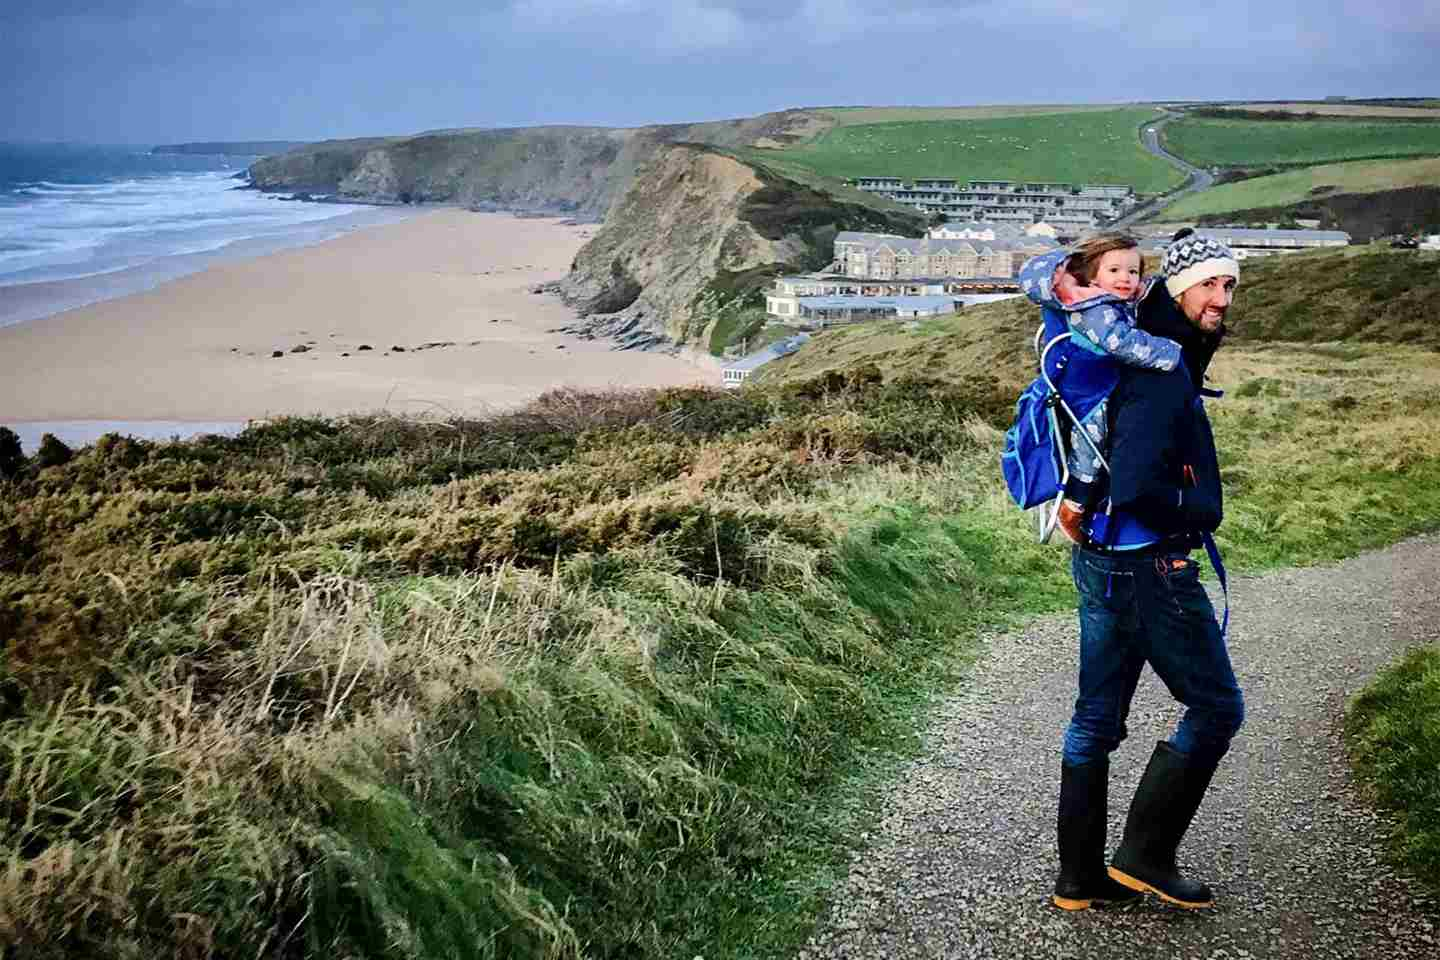 Father-and-child-walking-along-the-coast-path.jpg